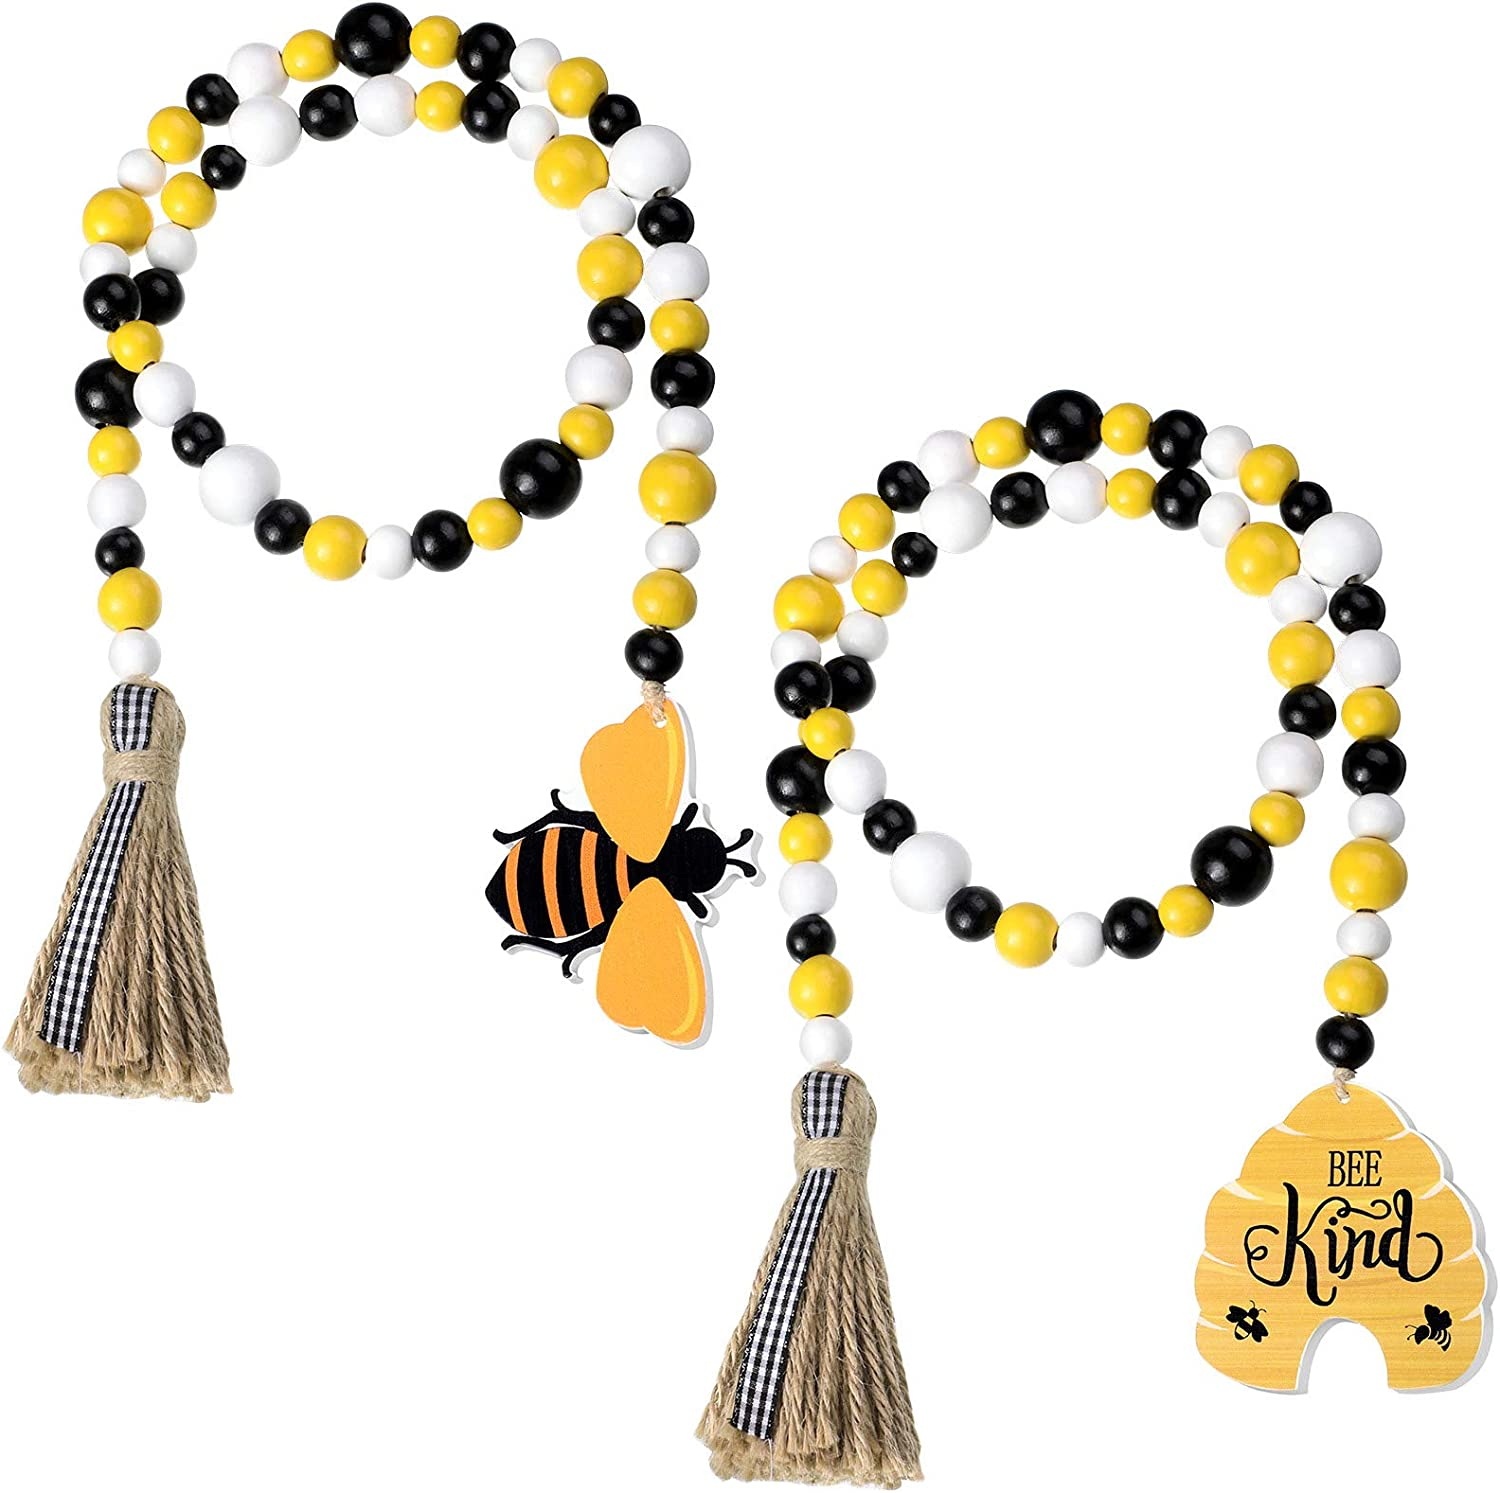 Jetec 2 Pieces Bee Wood Bead Garland with Tassels, Honeycomb Wood Bead Spring Summer Wooden Bead Garland Rustic Farmhouse Home Decorations for Tiered Tray Shelf Displays